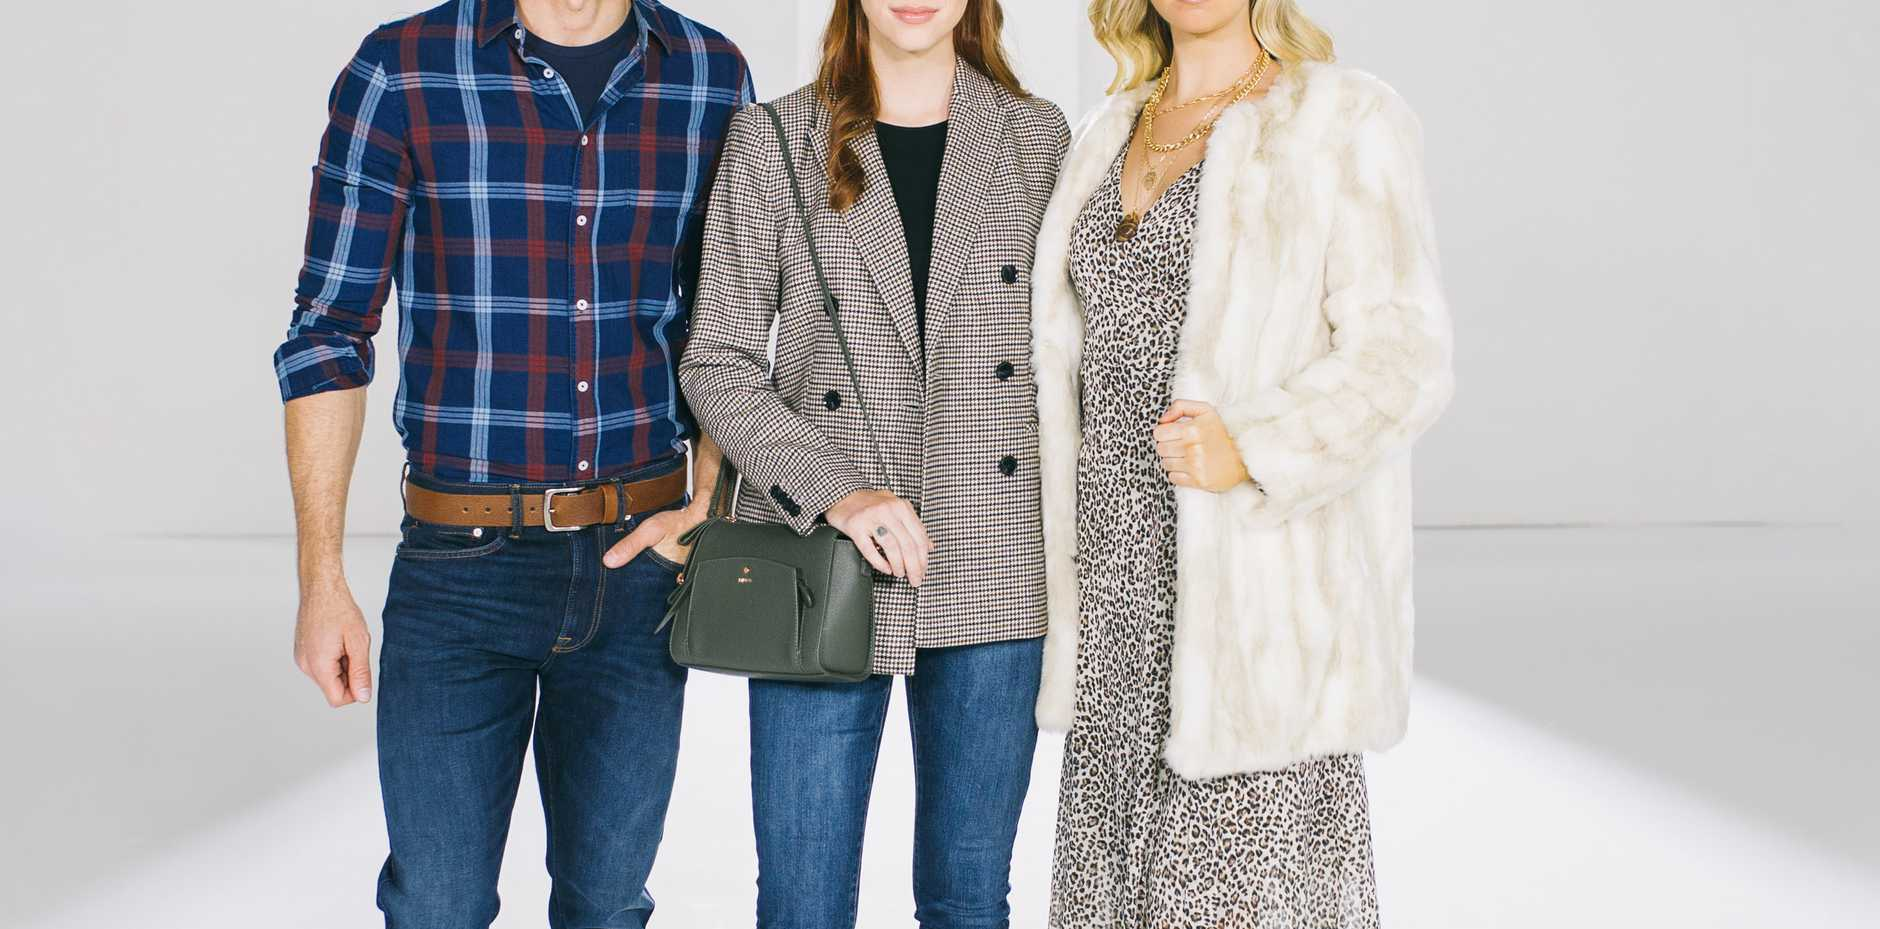 WHAT TO WEAR: Dressed for winter are (from left) Eamonn Katter wearing an outfit from Just Jeans with Country Road boots, Emma Sparks wears Witchery with a MIMCO bag, and Chelsea Johnston showcases a Dissh dress, Piper Jacket, Midas boots and Eyecare Plus sunglasses.